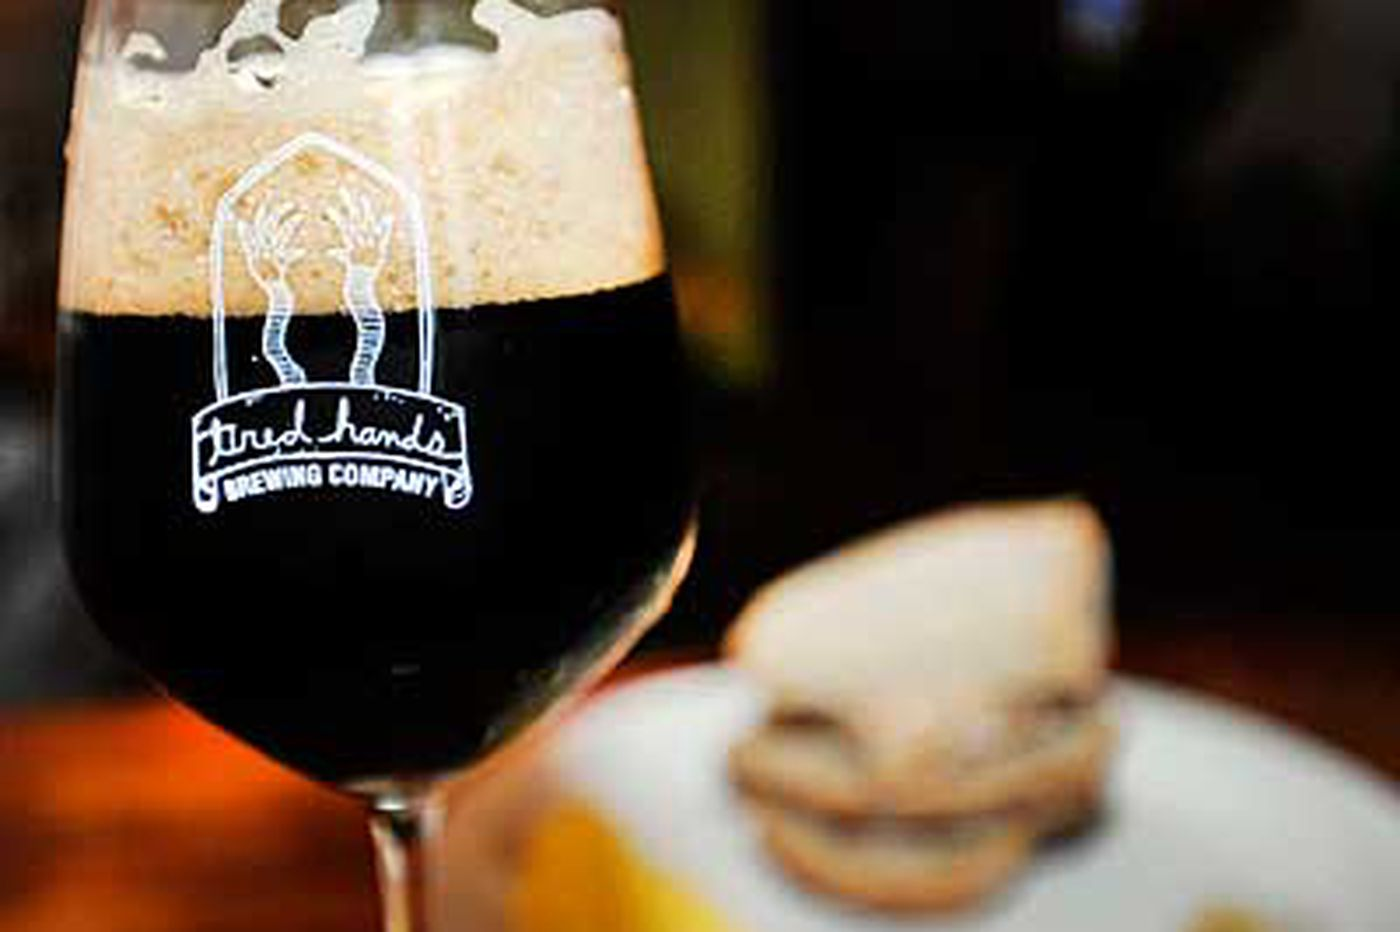 Drink: Artisnale from Tired Hands